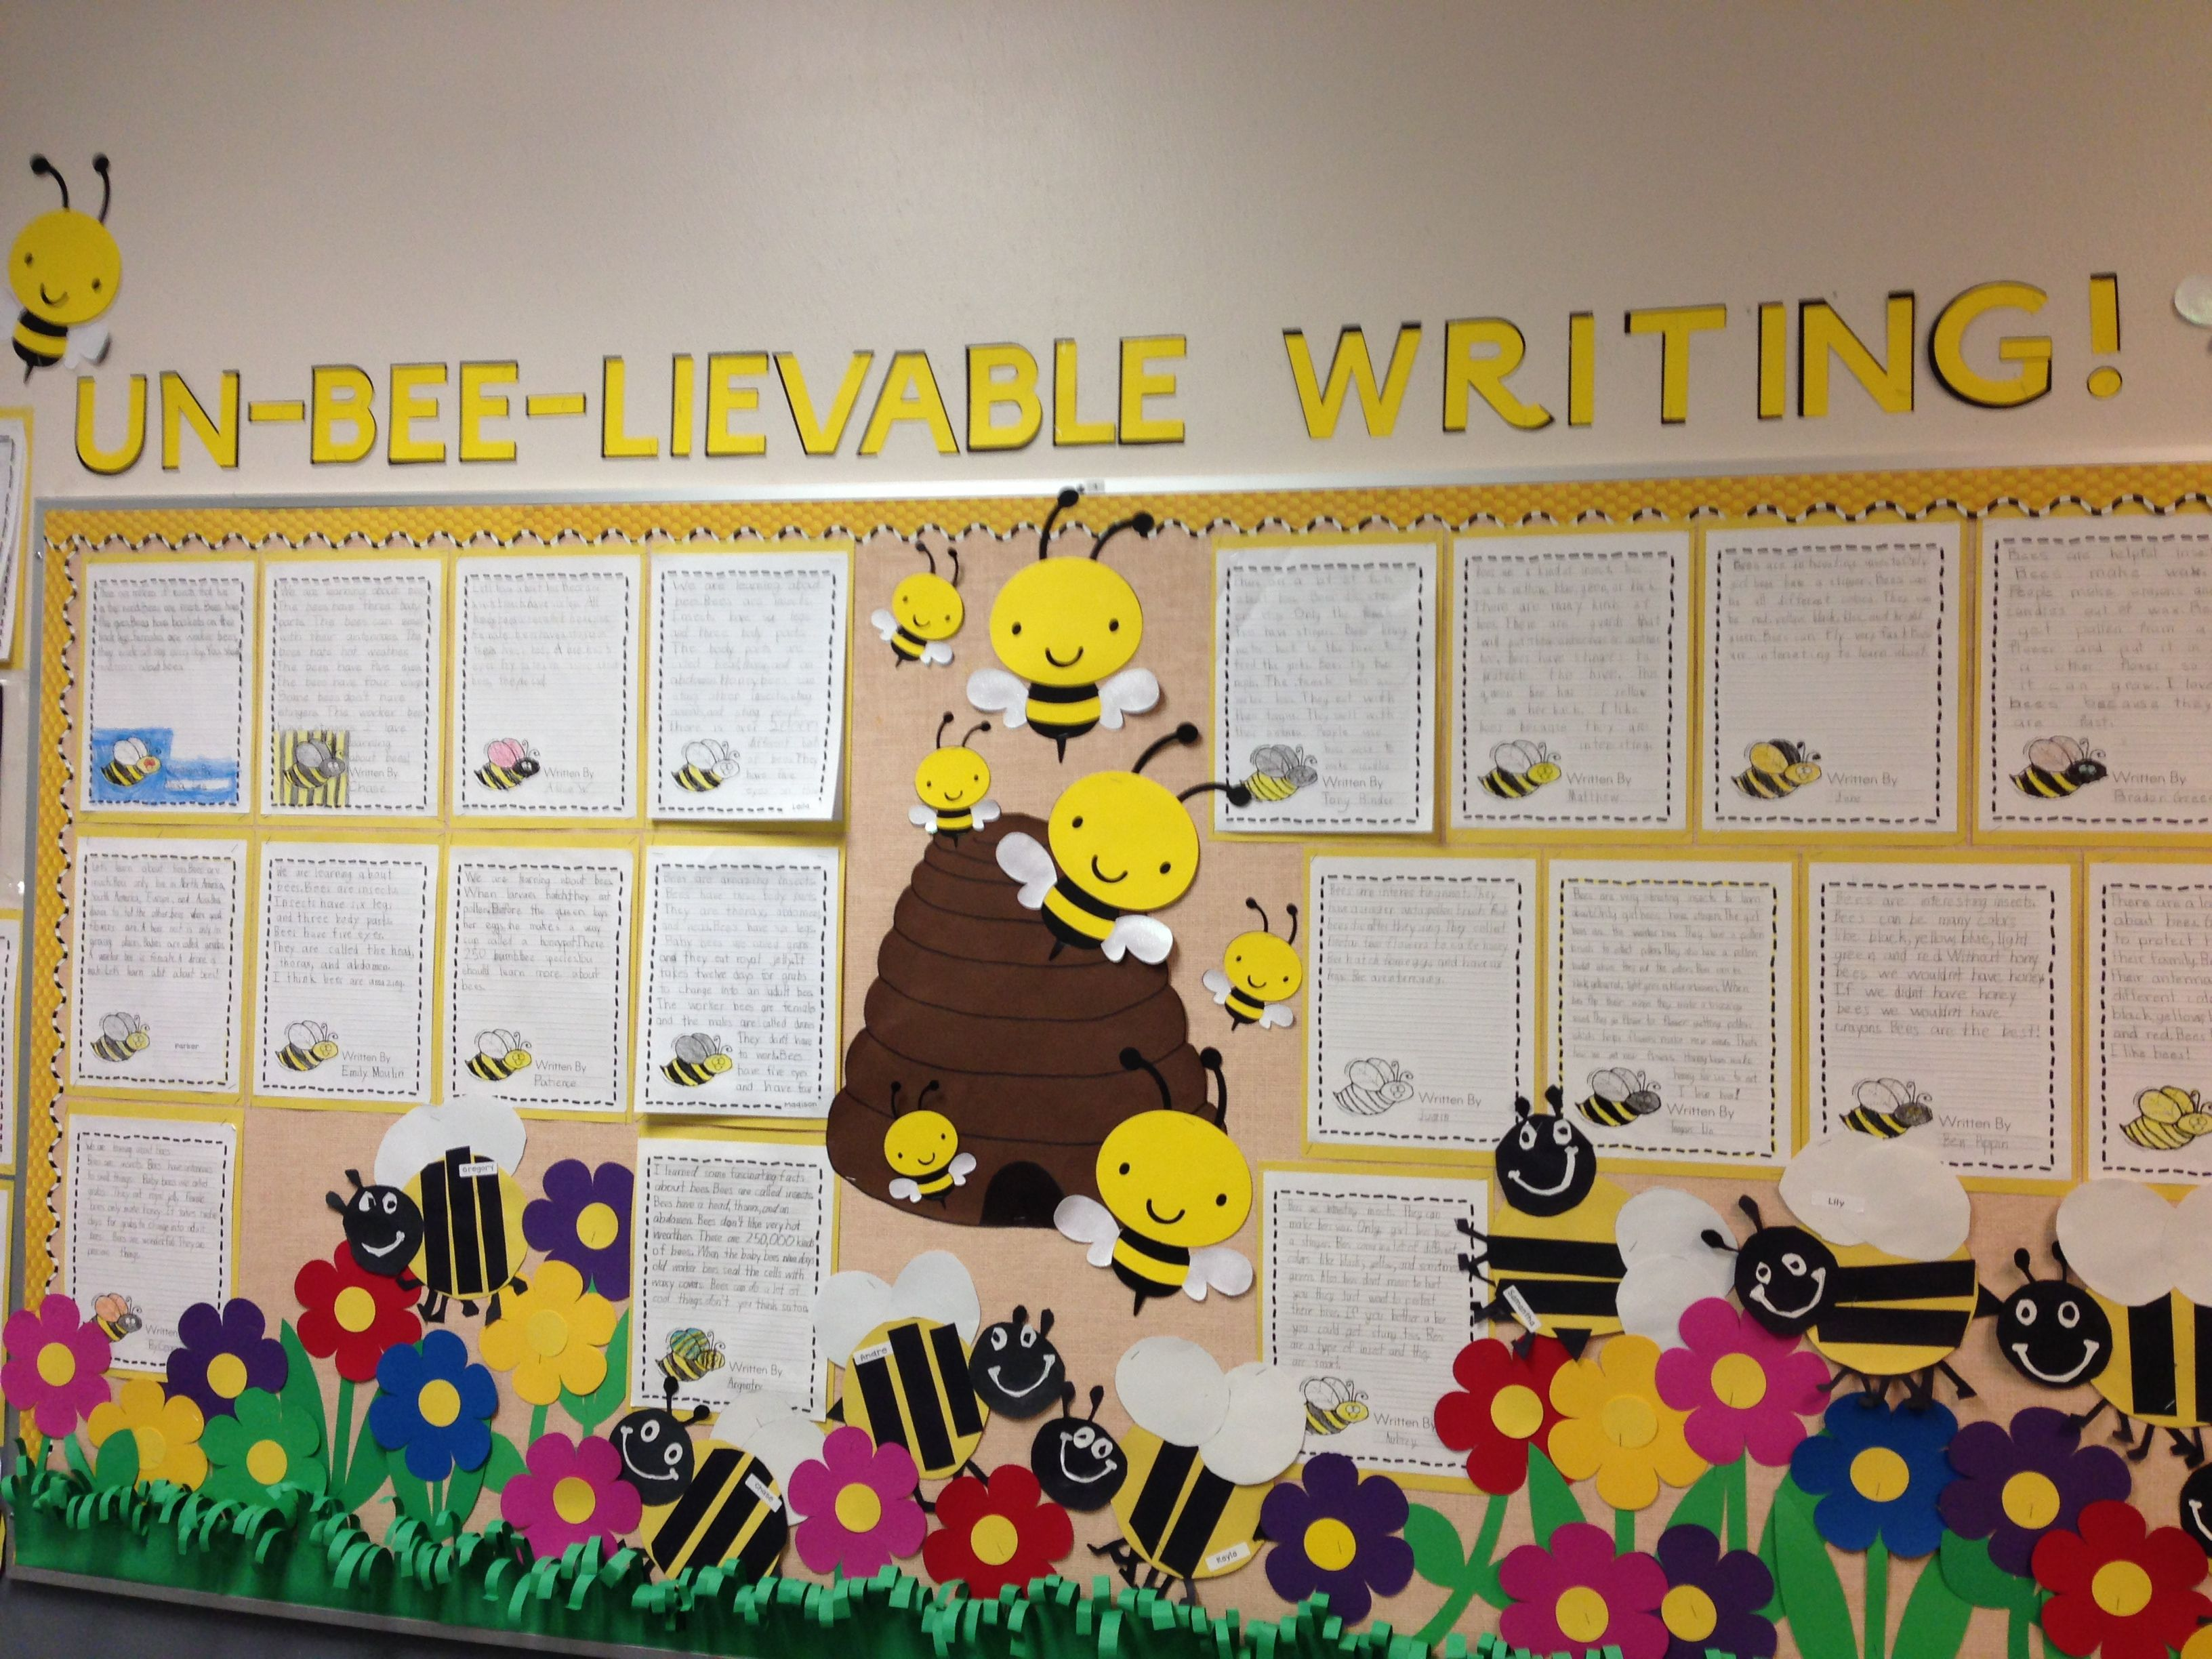 Classroom Ideas With Bees ~ Spring bulletin board un bee lievable writing bumble